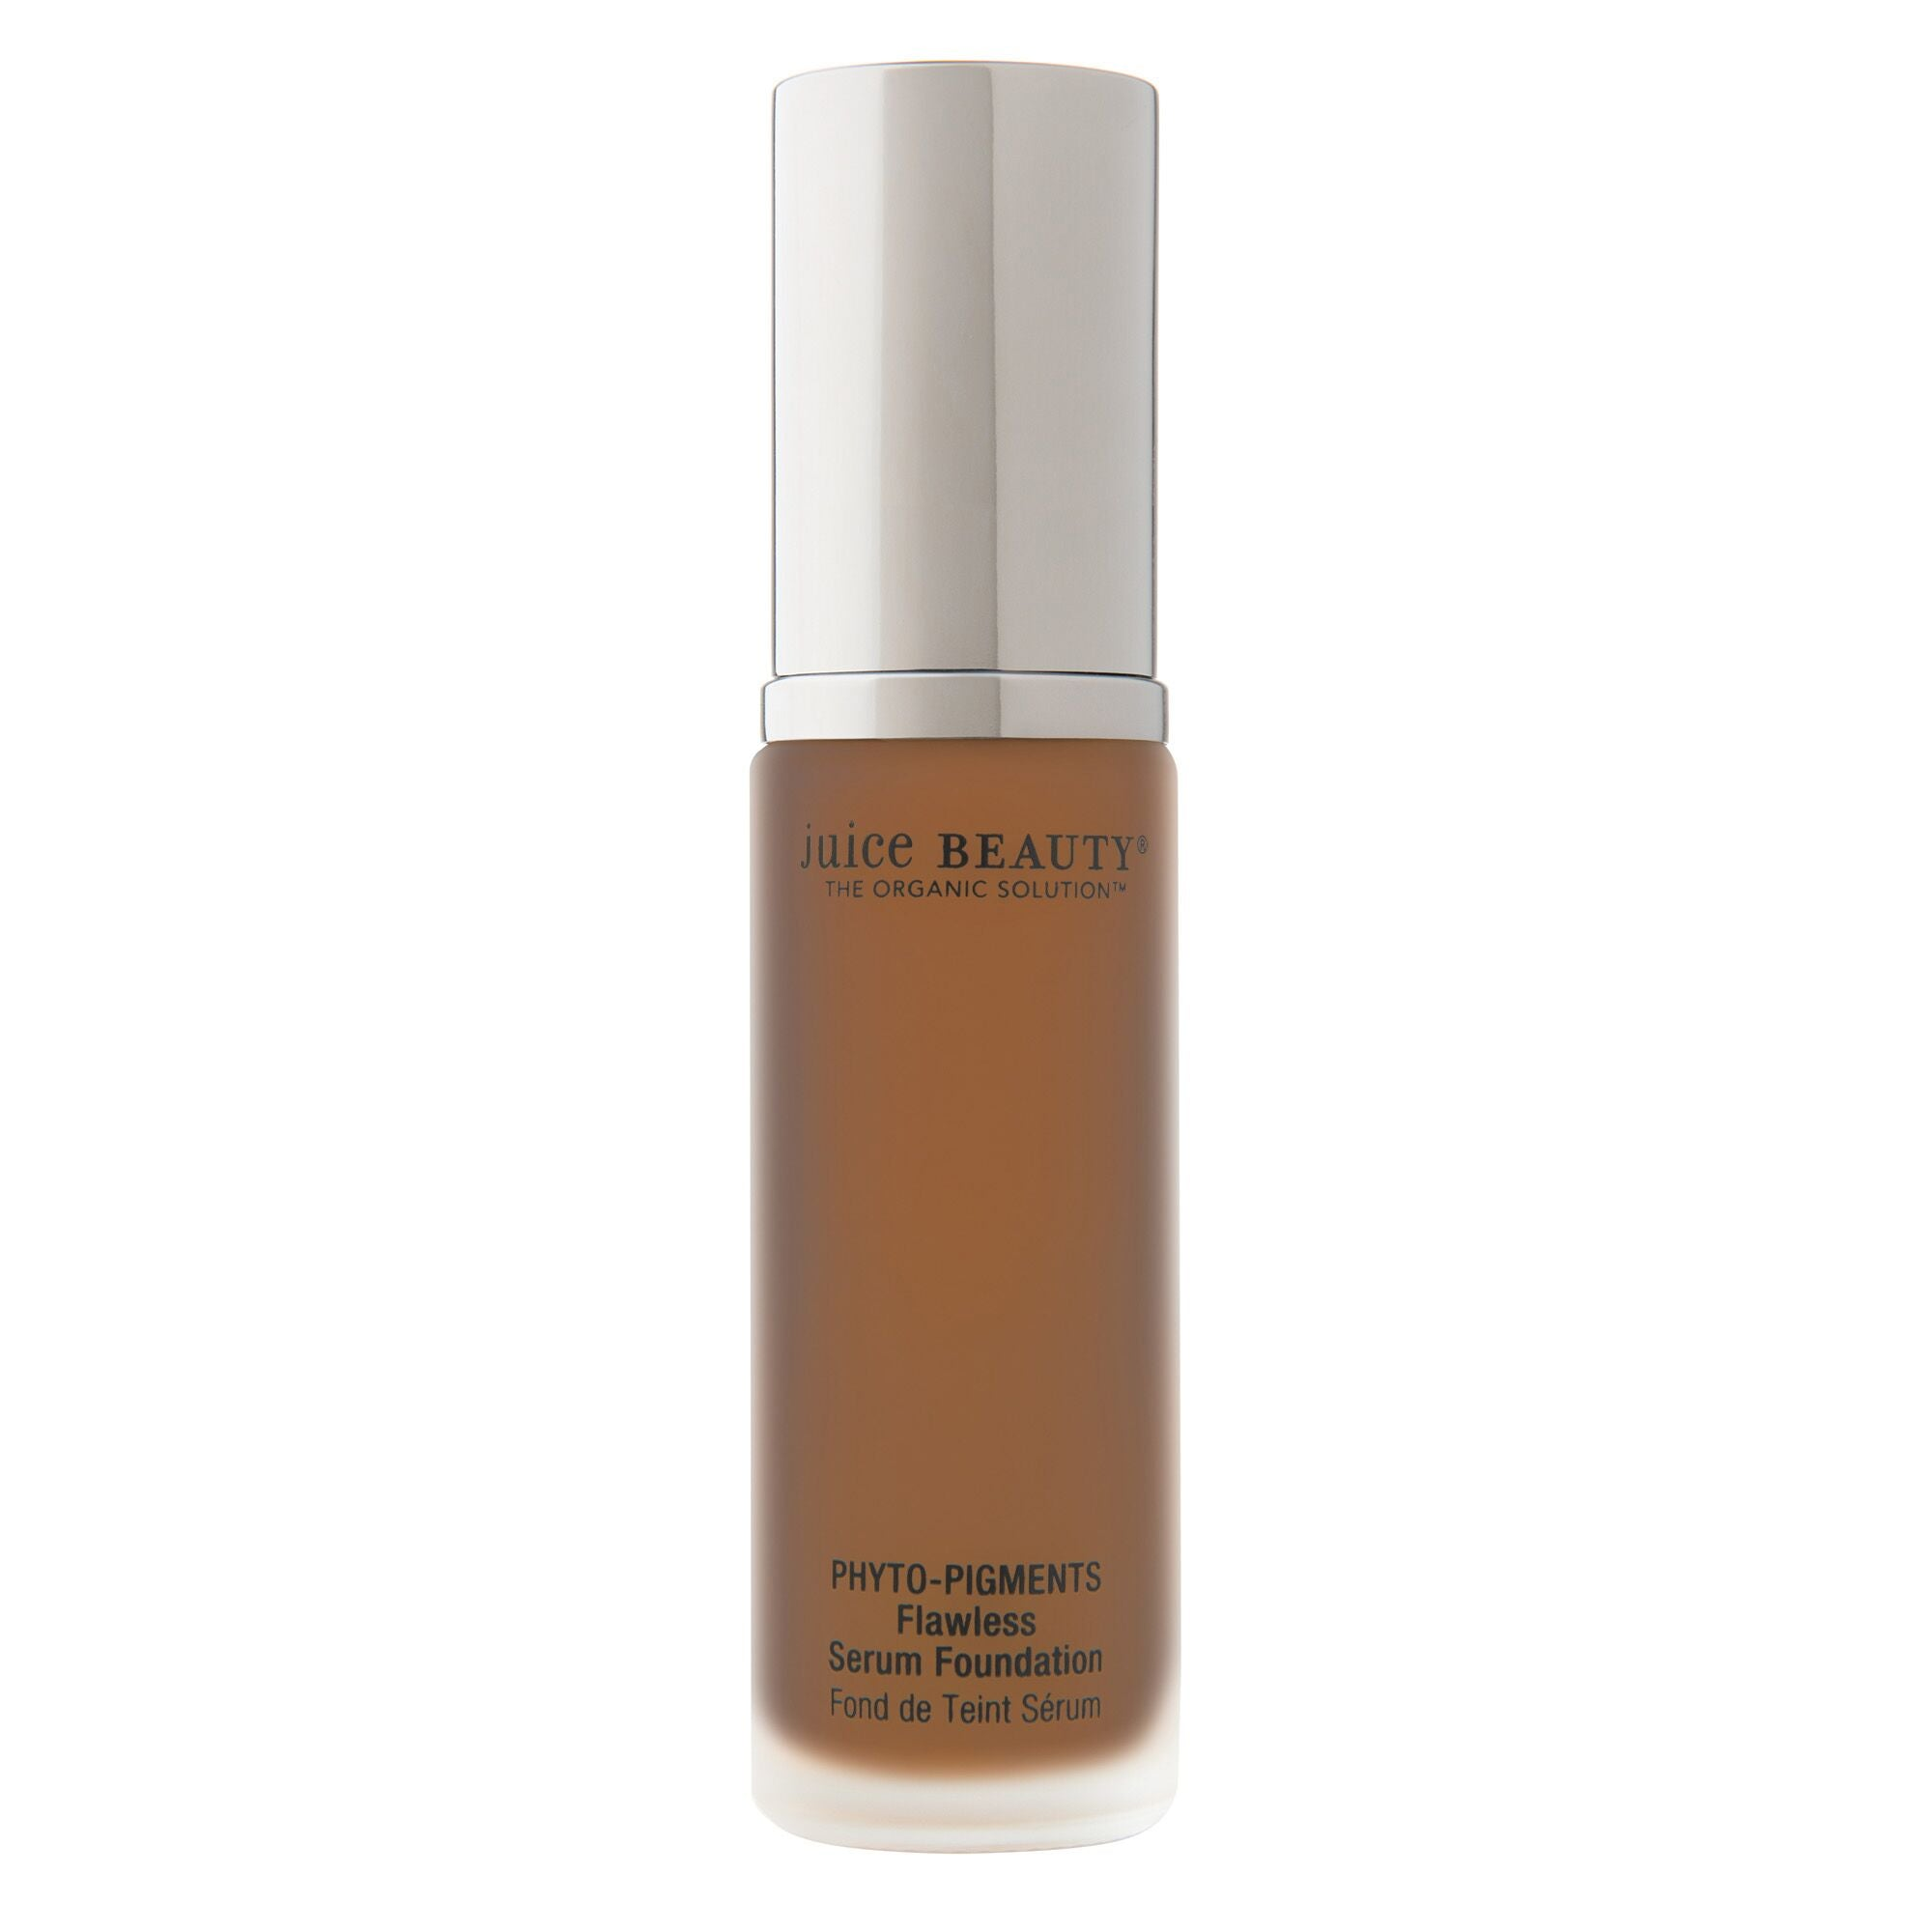 Flawless Serum Foundation - 29 Deep